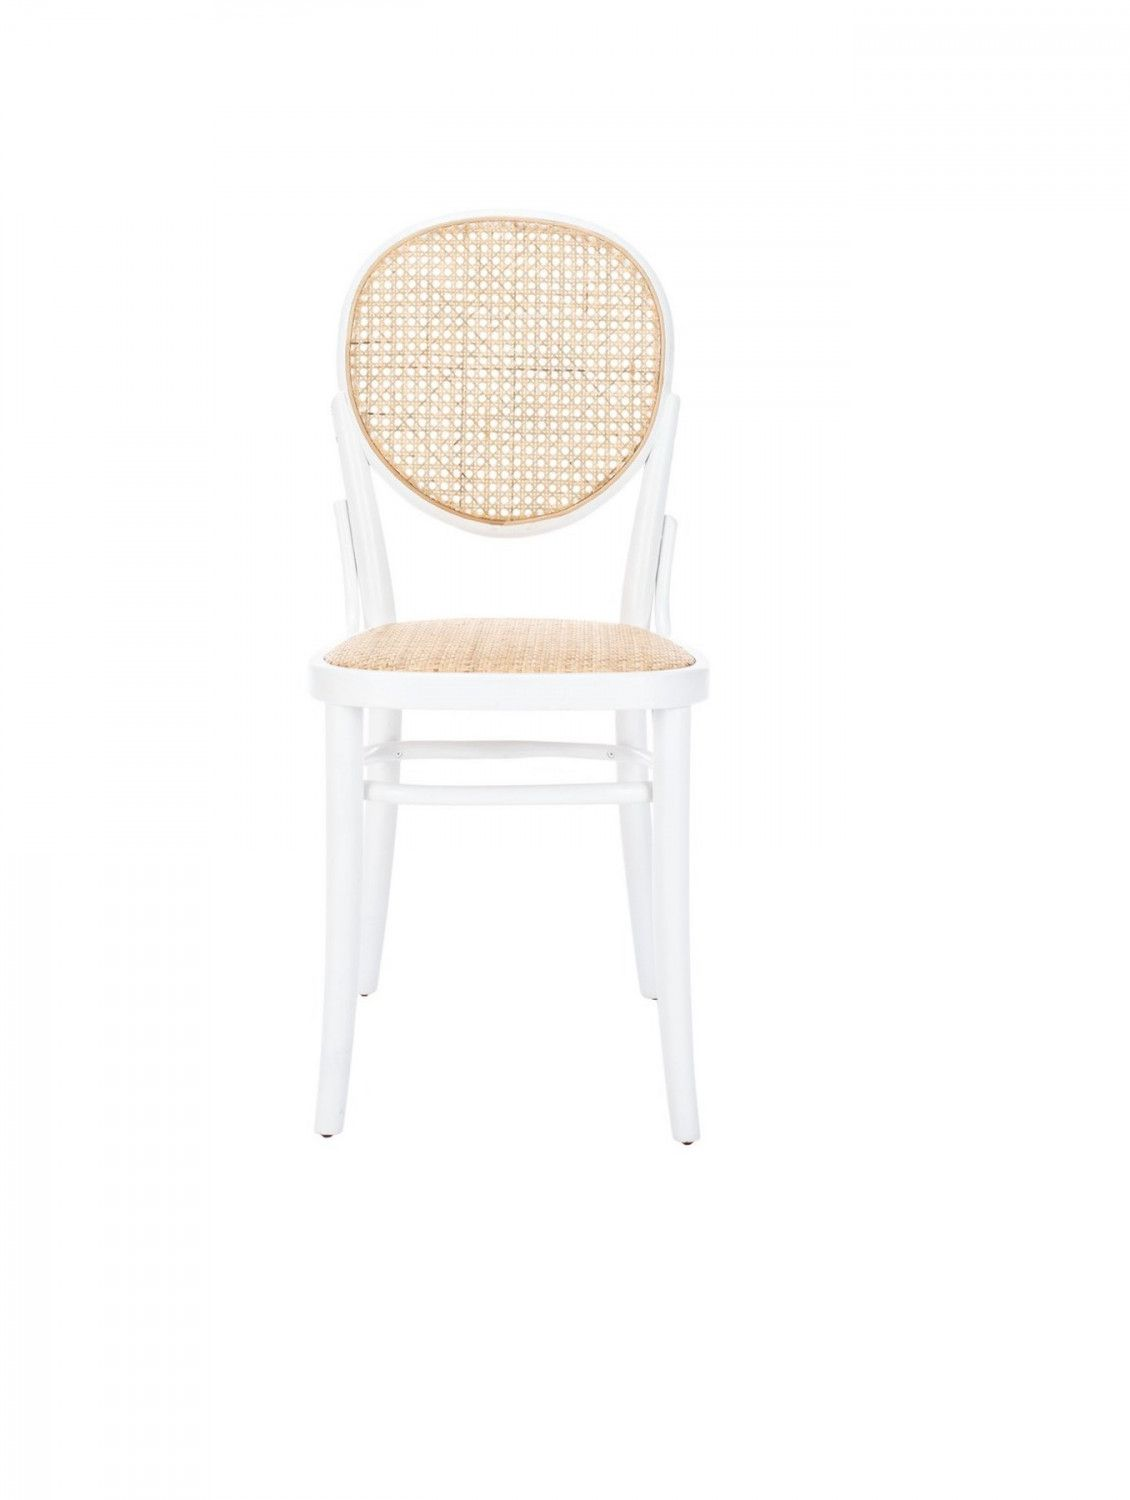 Bea Cane Dining Chair Set Of 2 White In 2020 Cane Dining Chairs Dining Chairs Chair Set